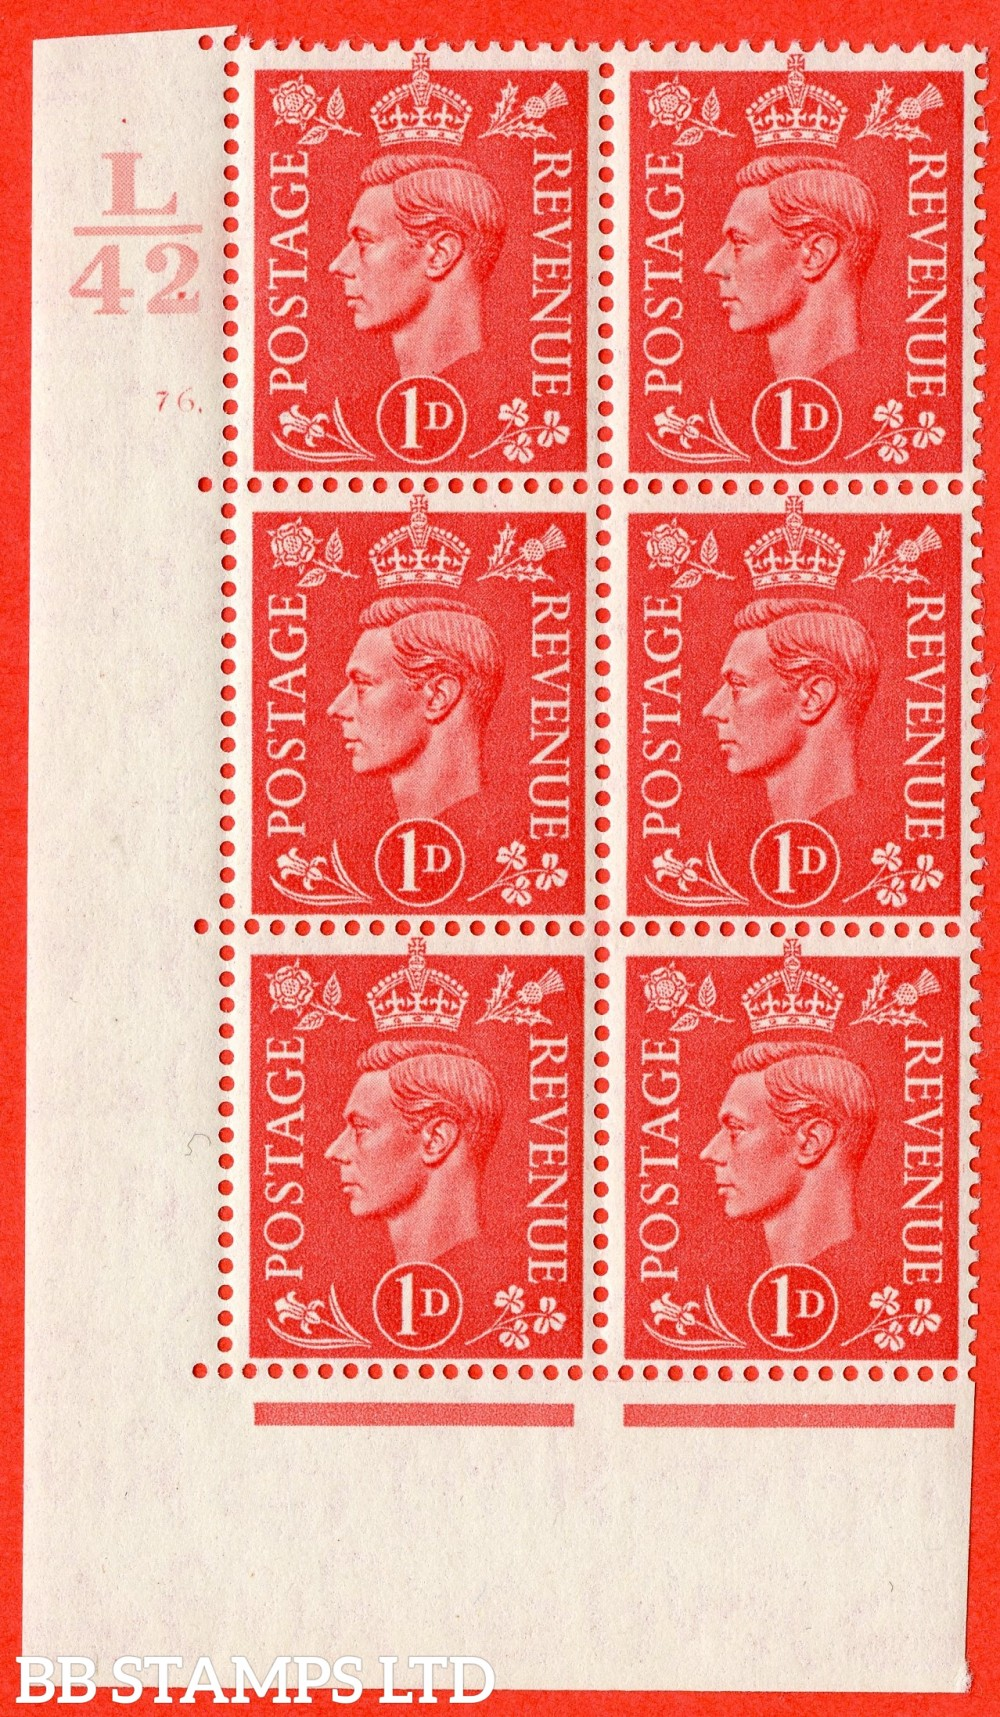 "SG. 486. Q5. 1d Pale scarlet. Asuperb UNMOUNTED MINT "" Control L42  cylinder 76 dot "" control block of 6 with perf type 5 E/I."